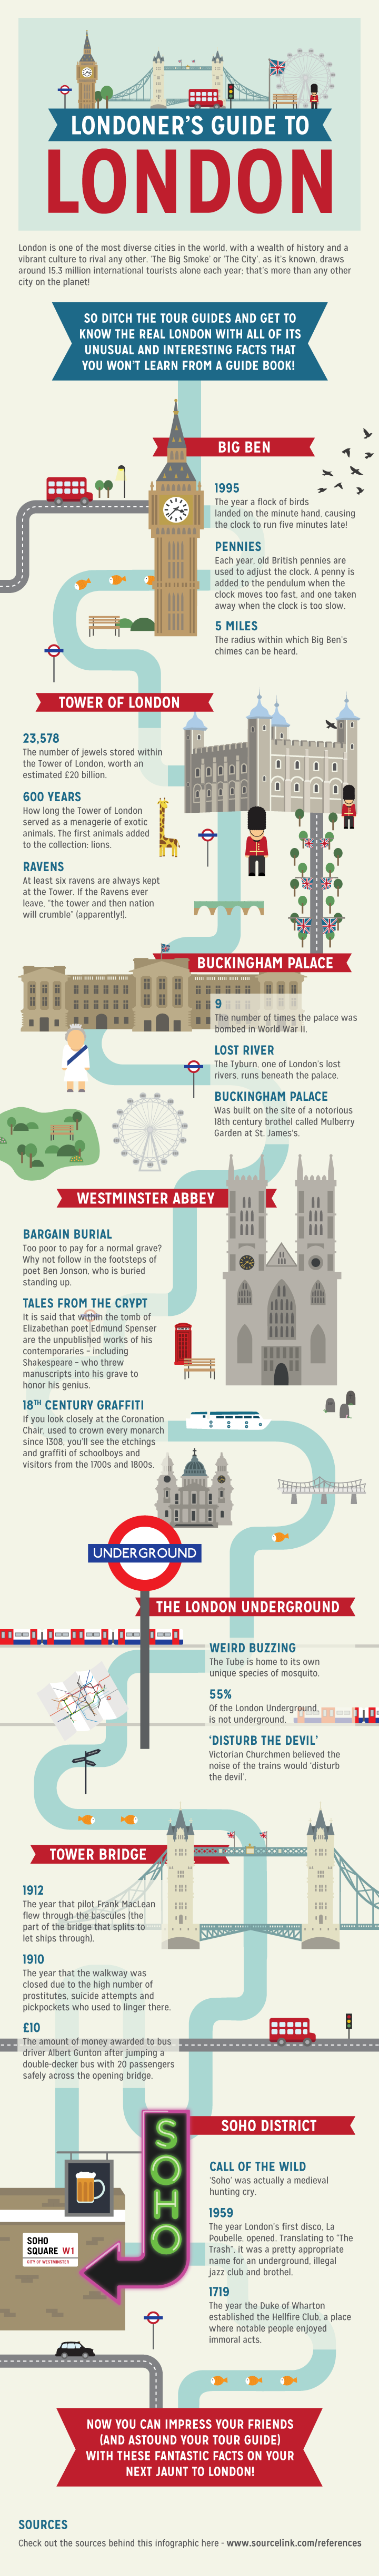 #Infographic: Londoner's guide to London